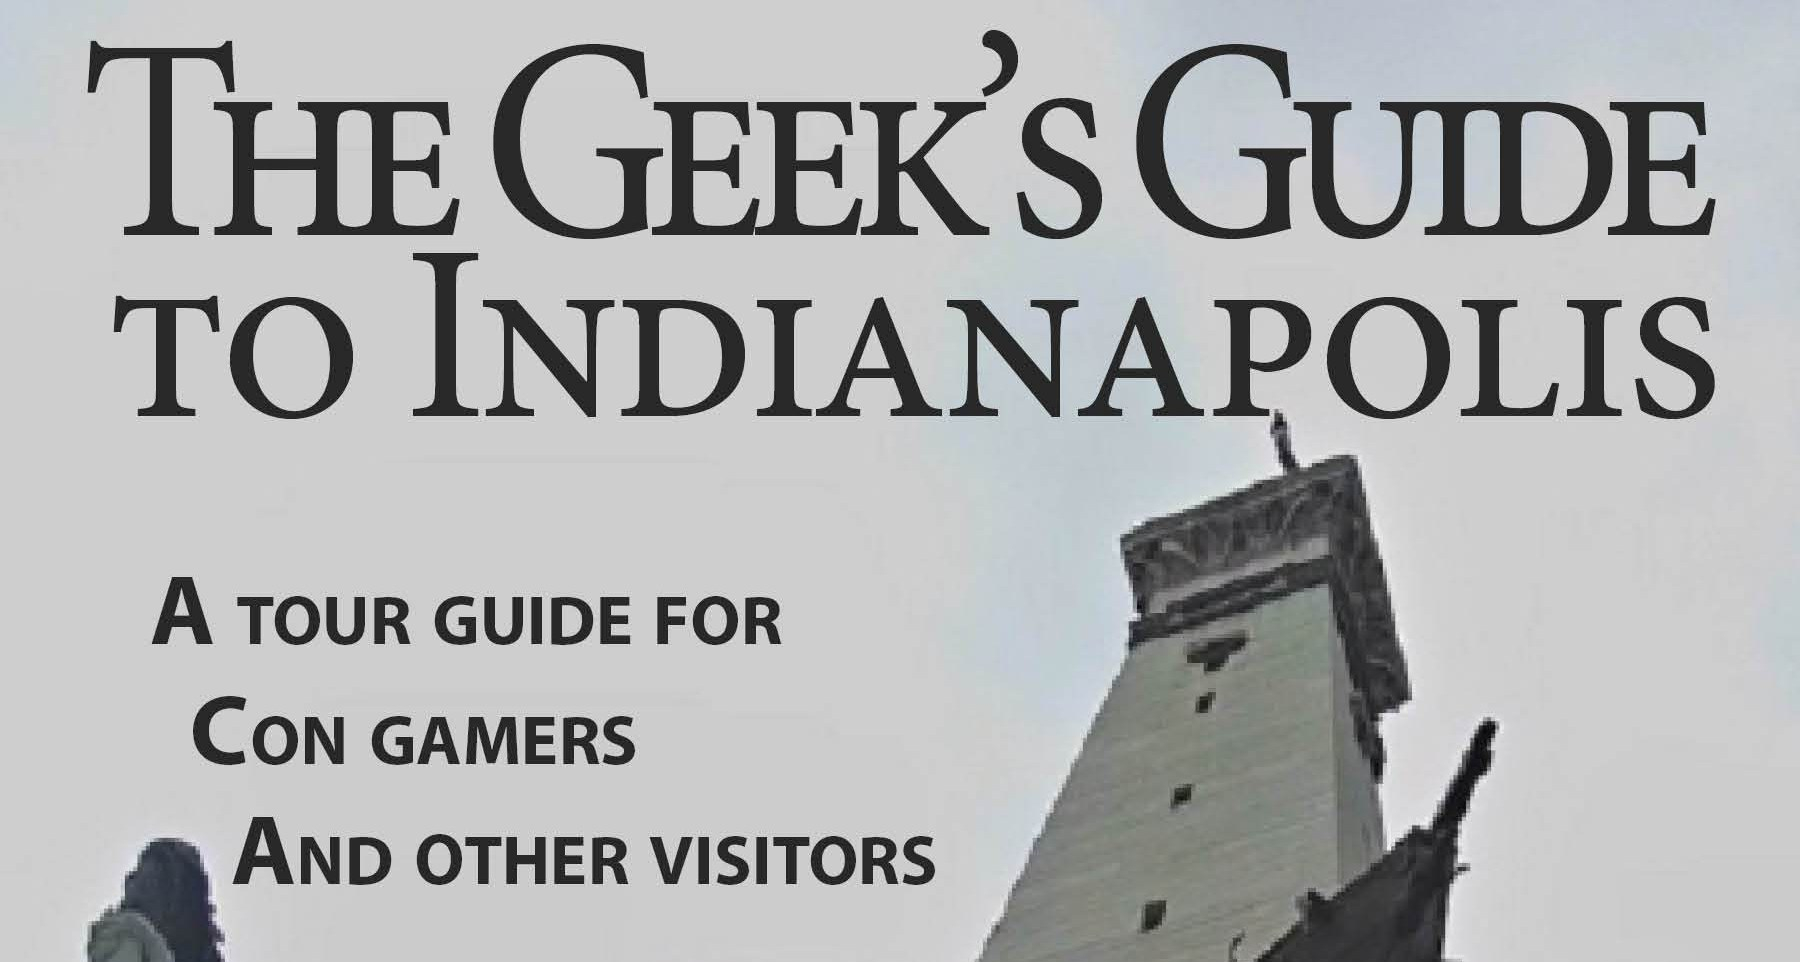 The Geek's Guide to Indianapolis, redux